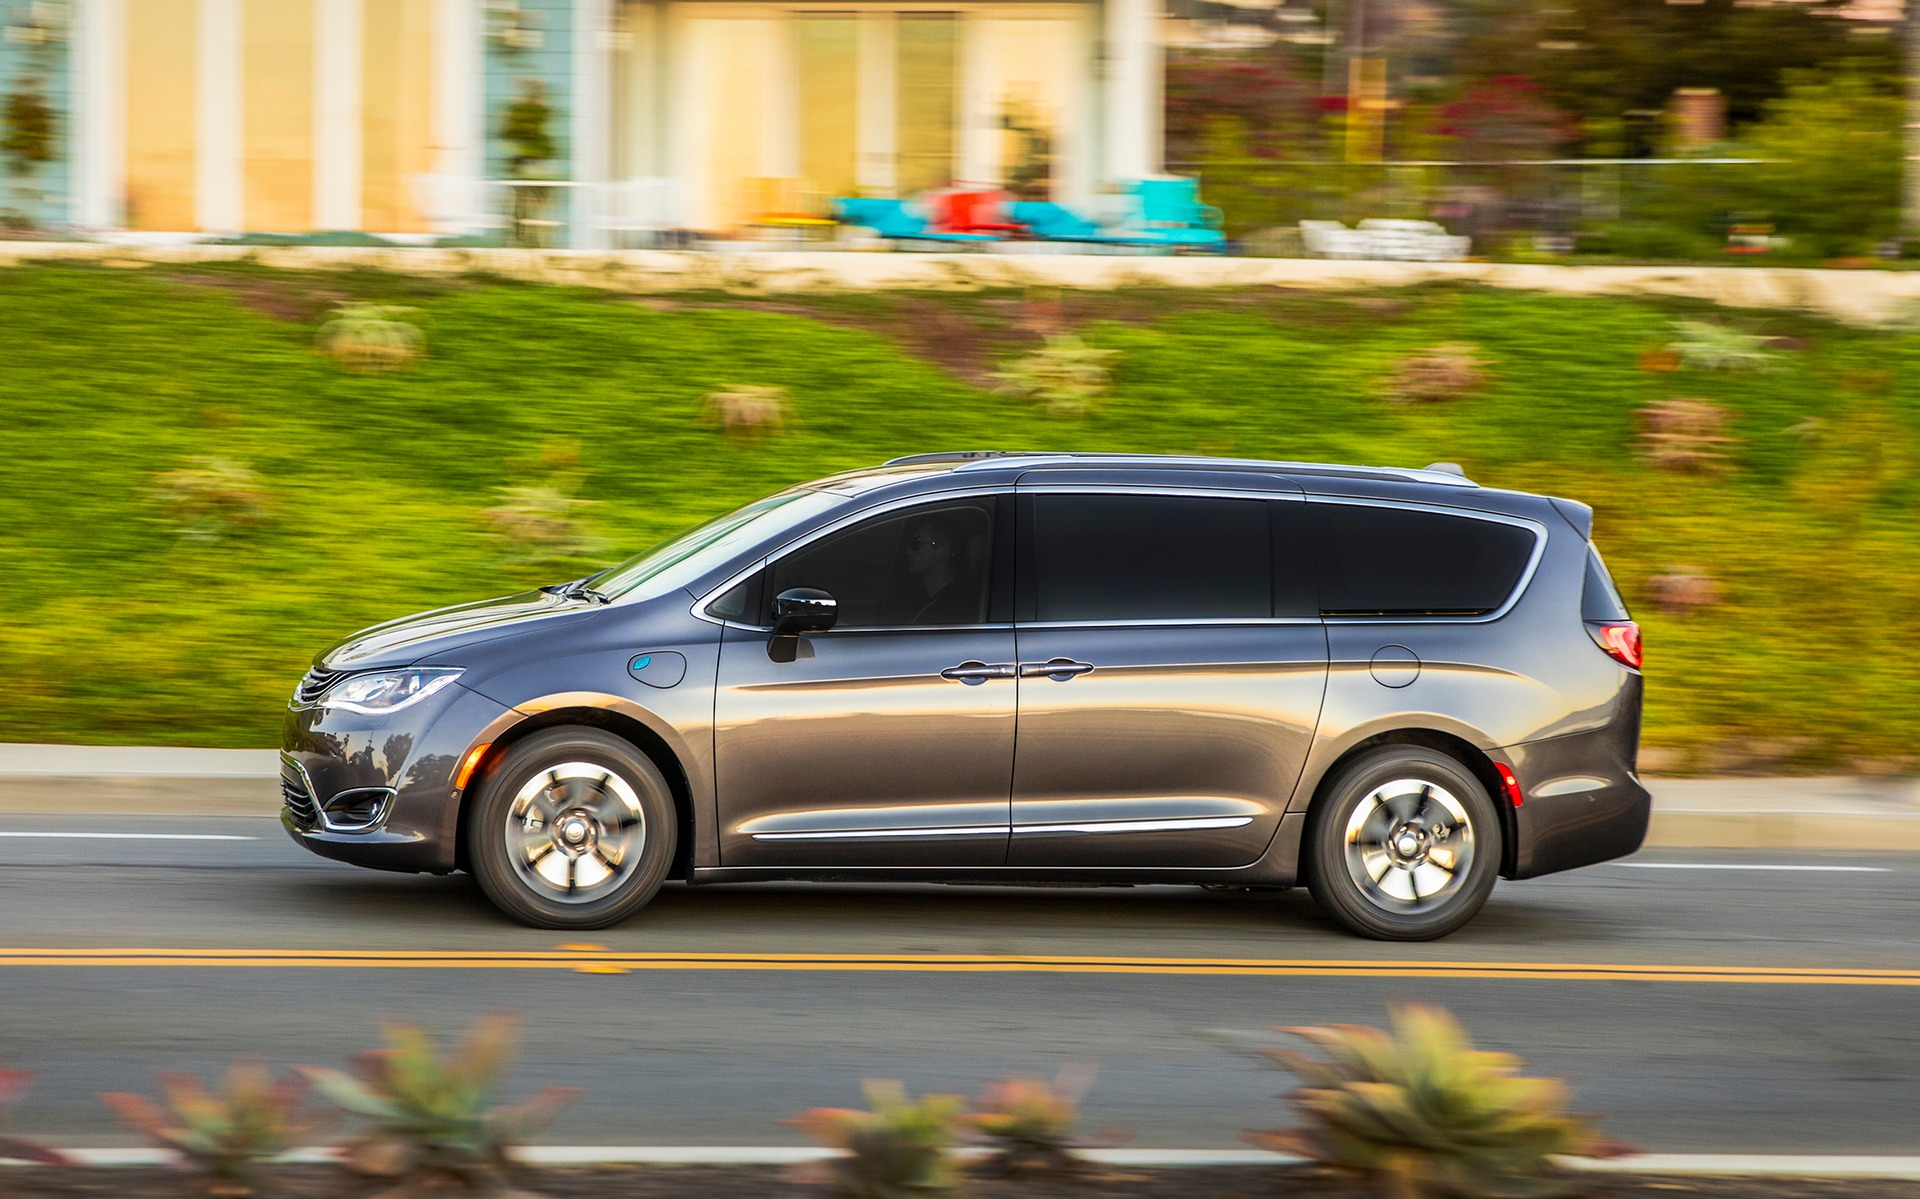 Chrysler Pacifica hybride 2019 : la familiale électrique 350964_2019_Chrysler_Pacifica